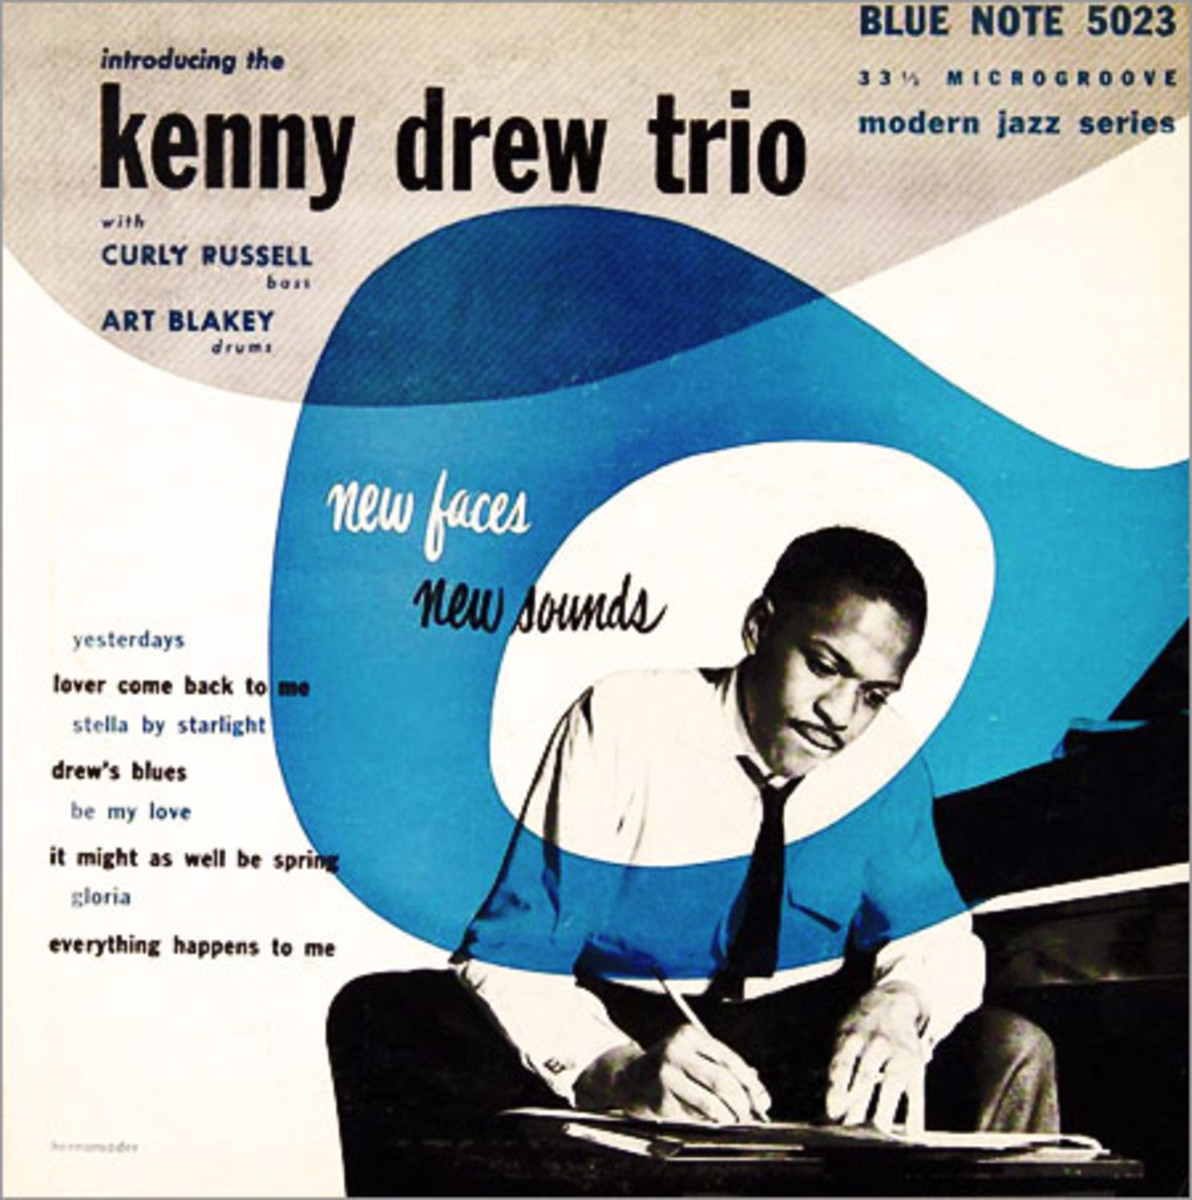 """Introducing The Kenny Drew Trio """"New Faces, New Sounds"""" Blue Note Records BLP 5023 10"""" LP Vinyl Microgroove Record (1953) Album Cover Design by Photo by"""